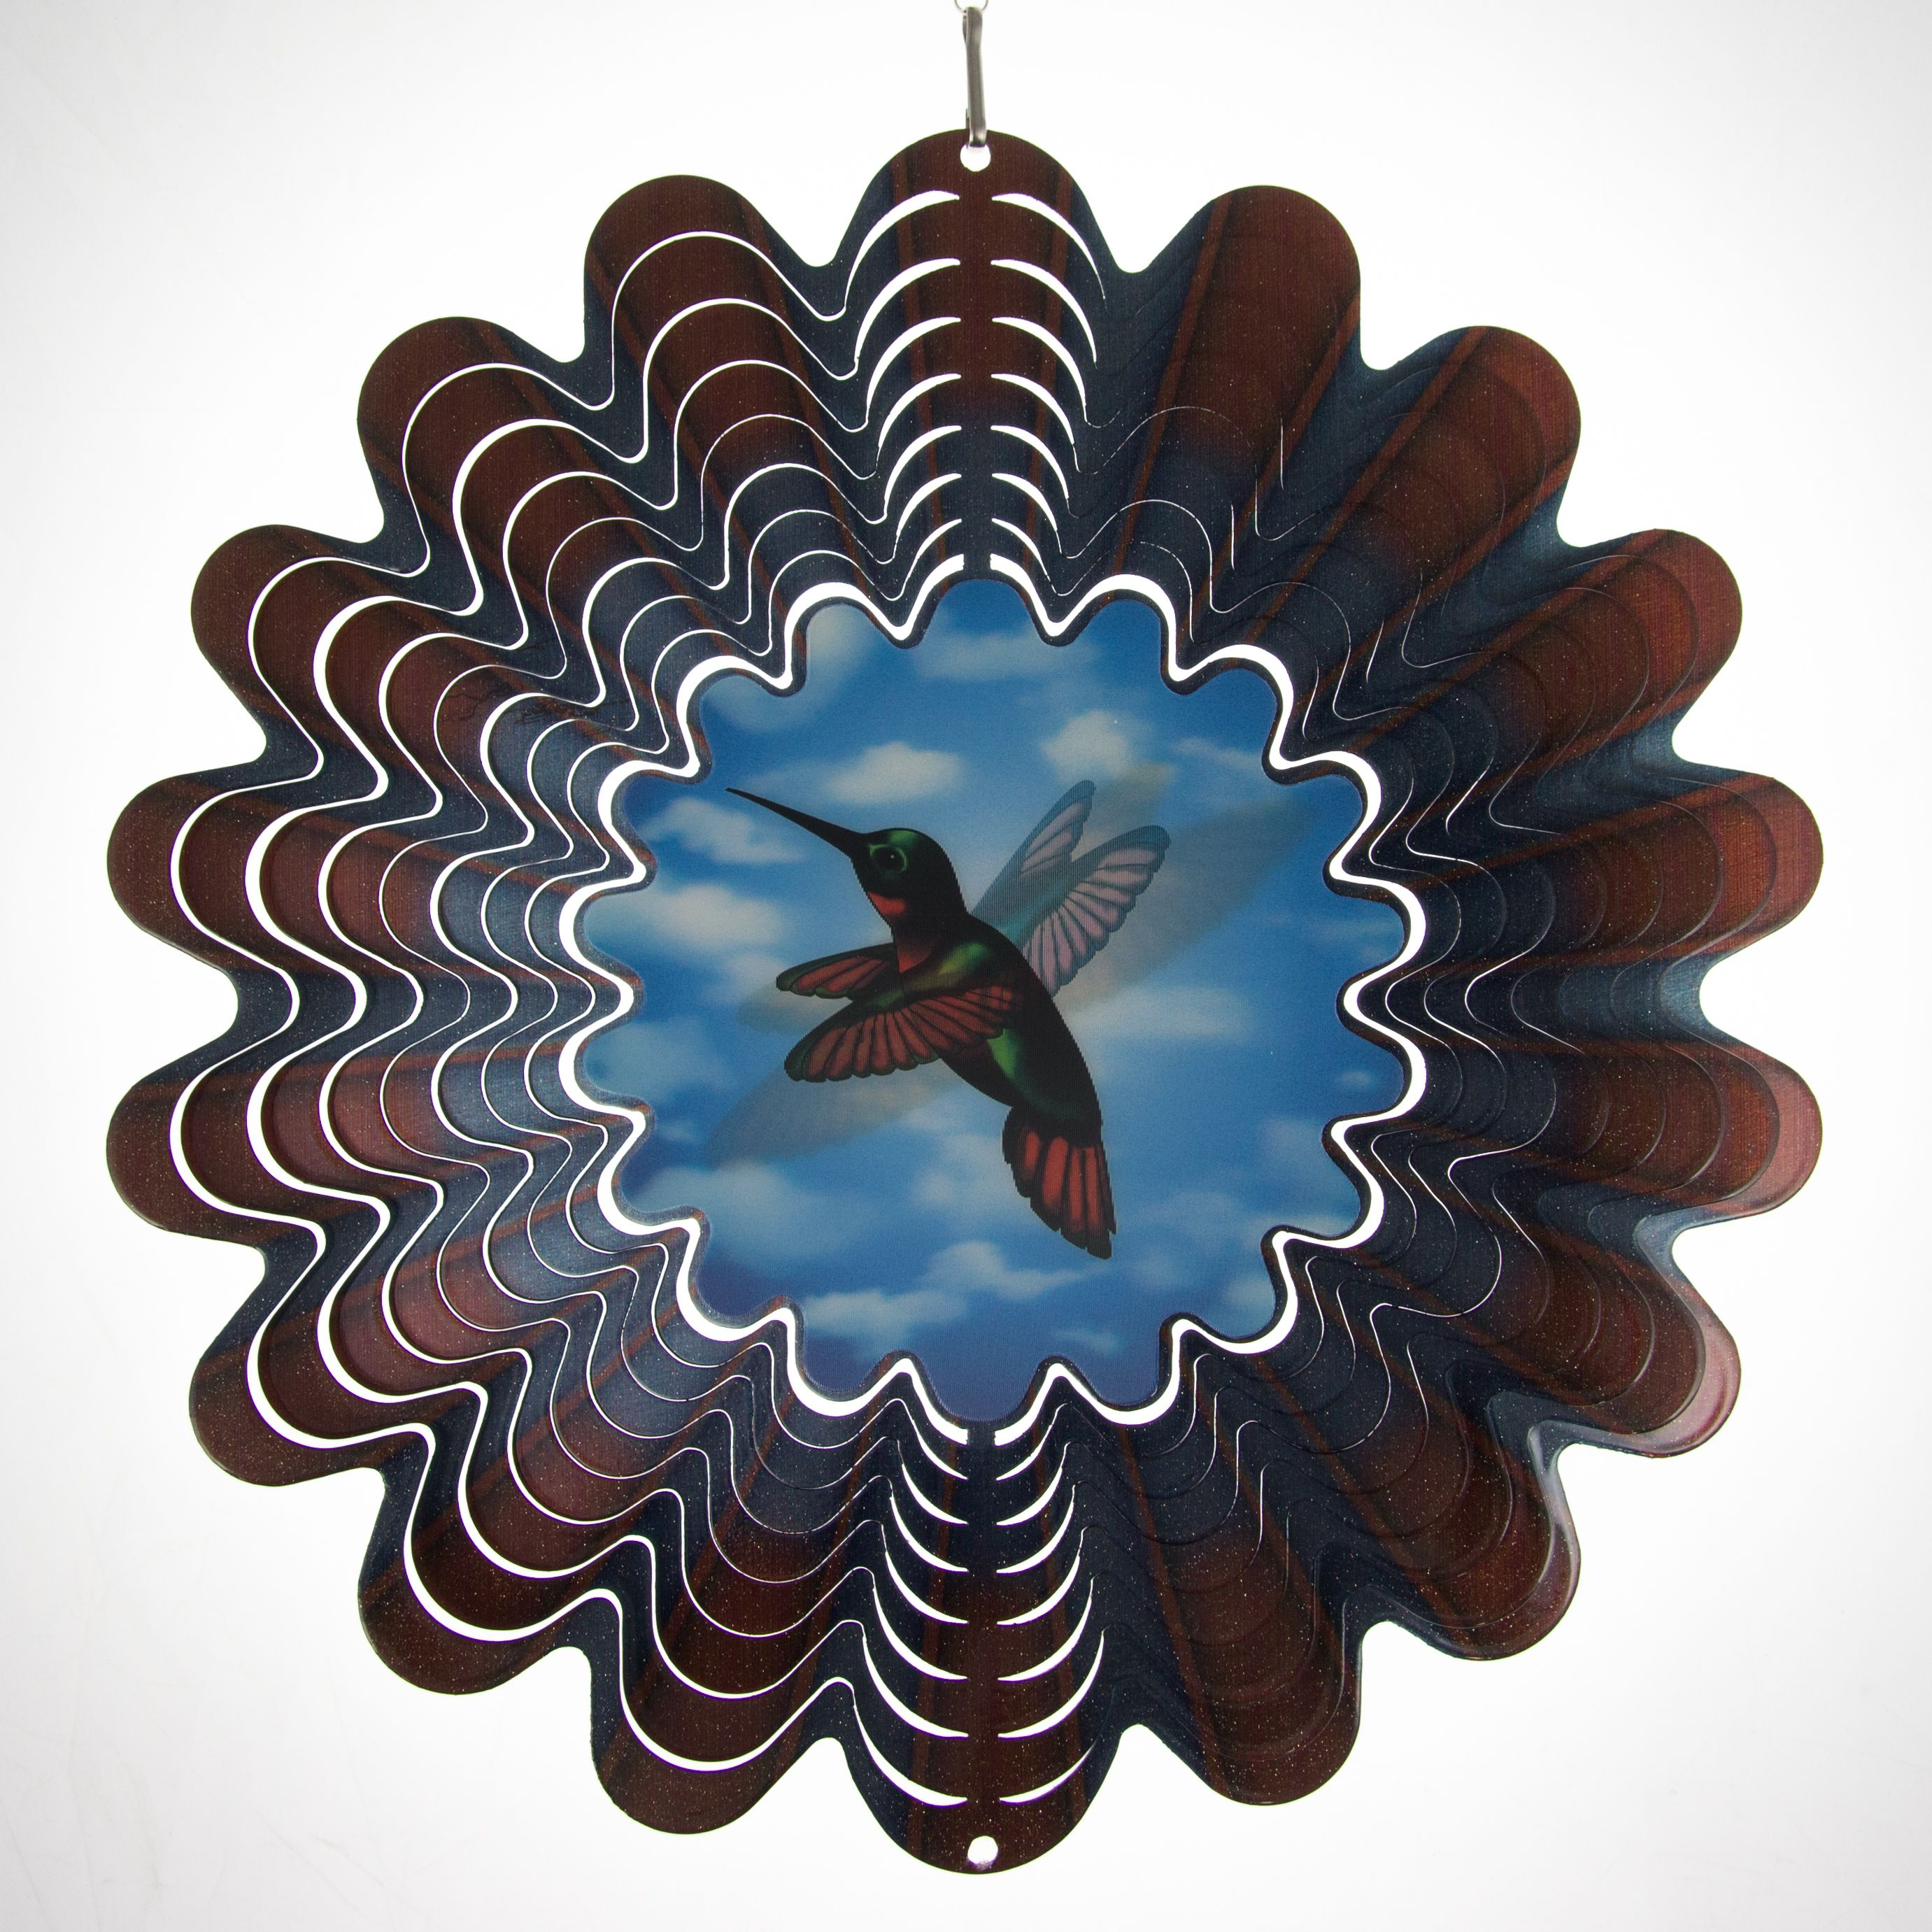 Iron Stop Holographic Animated Hummingbird Hanging Metal Wind Spinner Outdoor Patio Decor